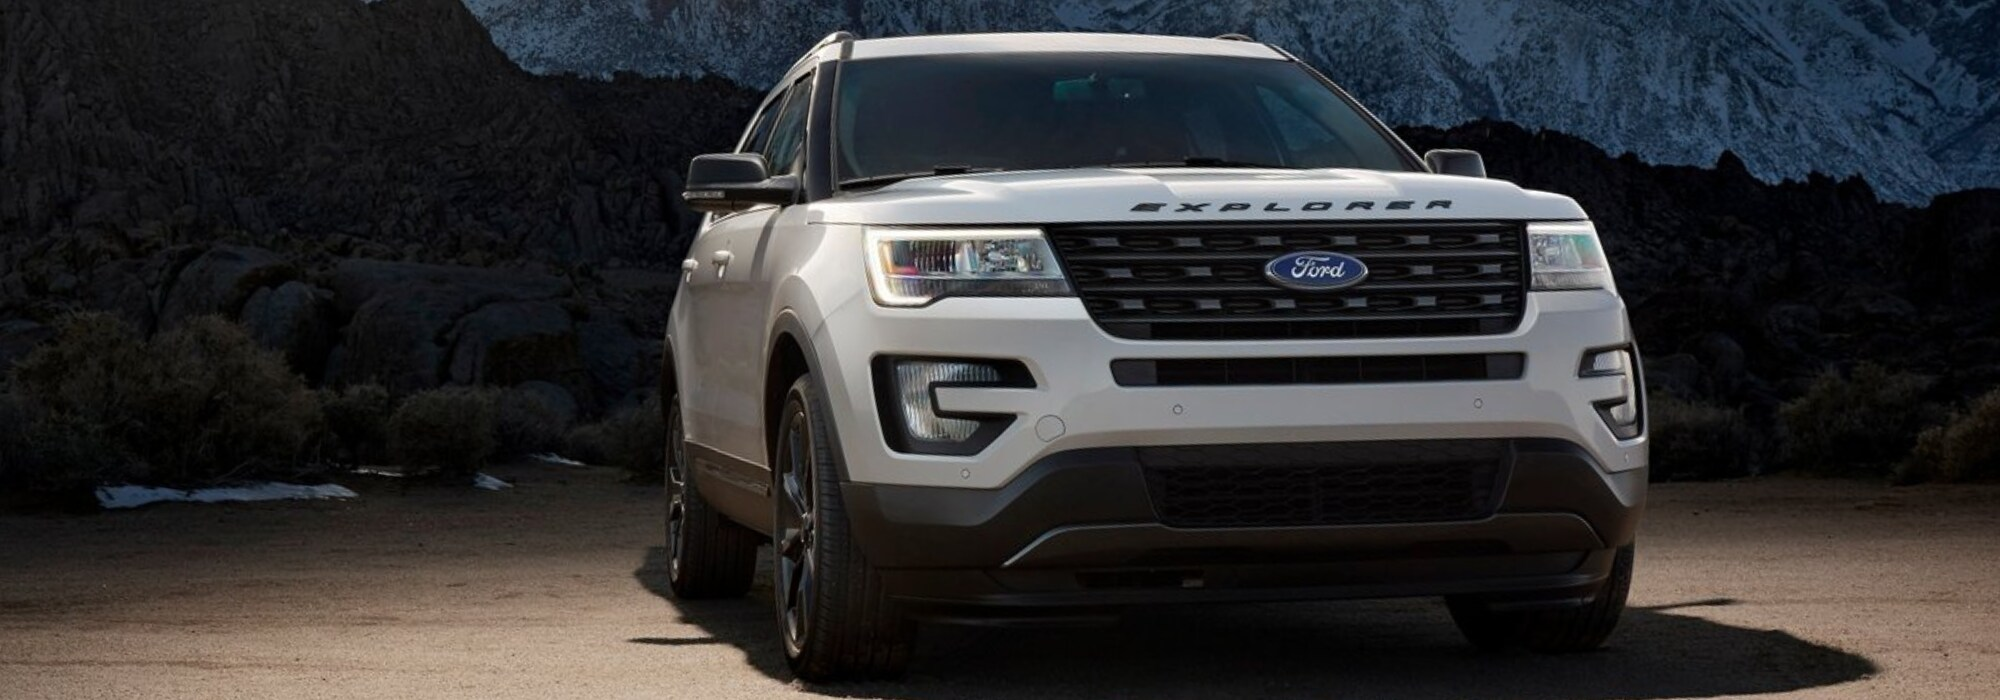 Used Ford Explorer SUVs for Sale in Colorado Springs